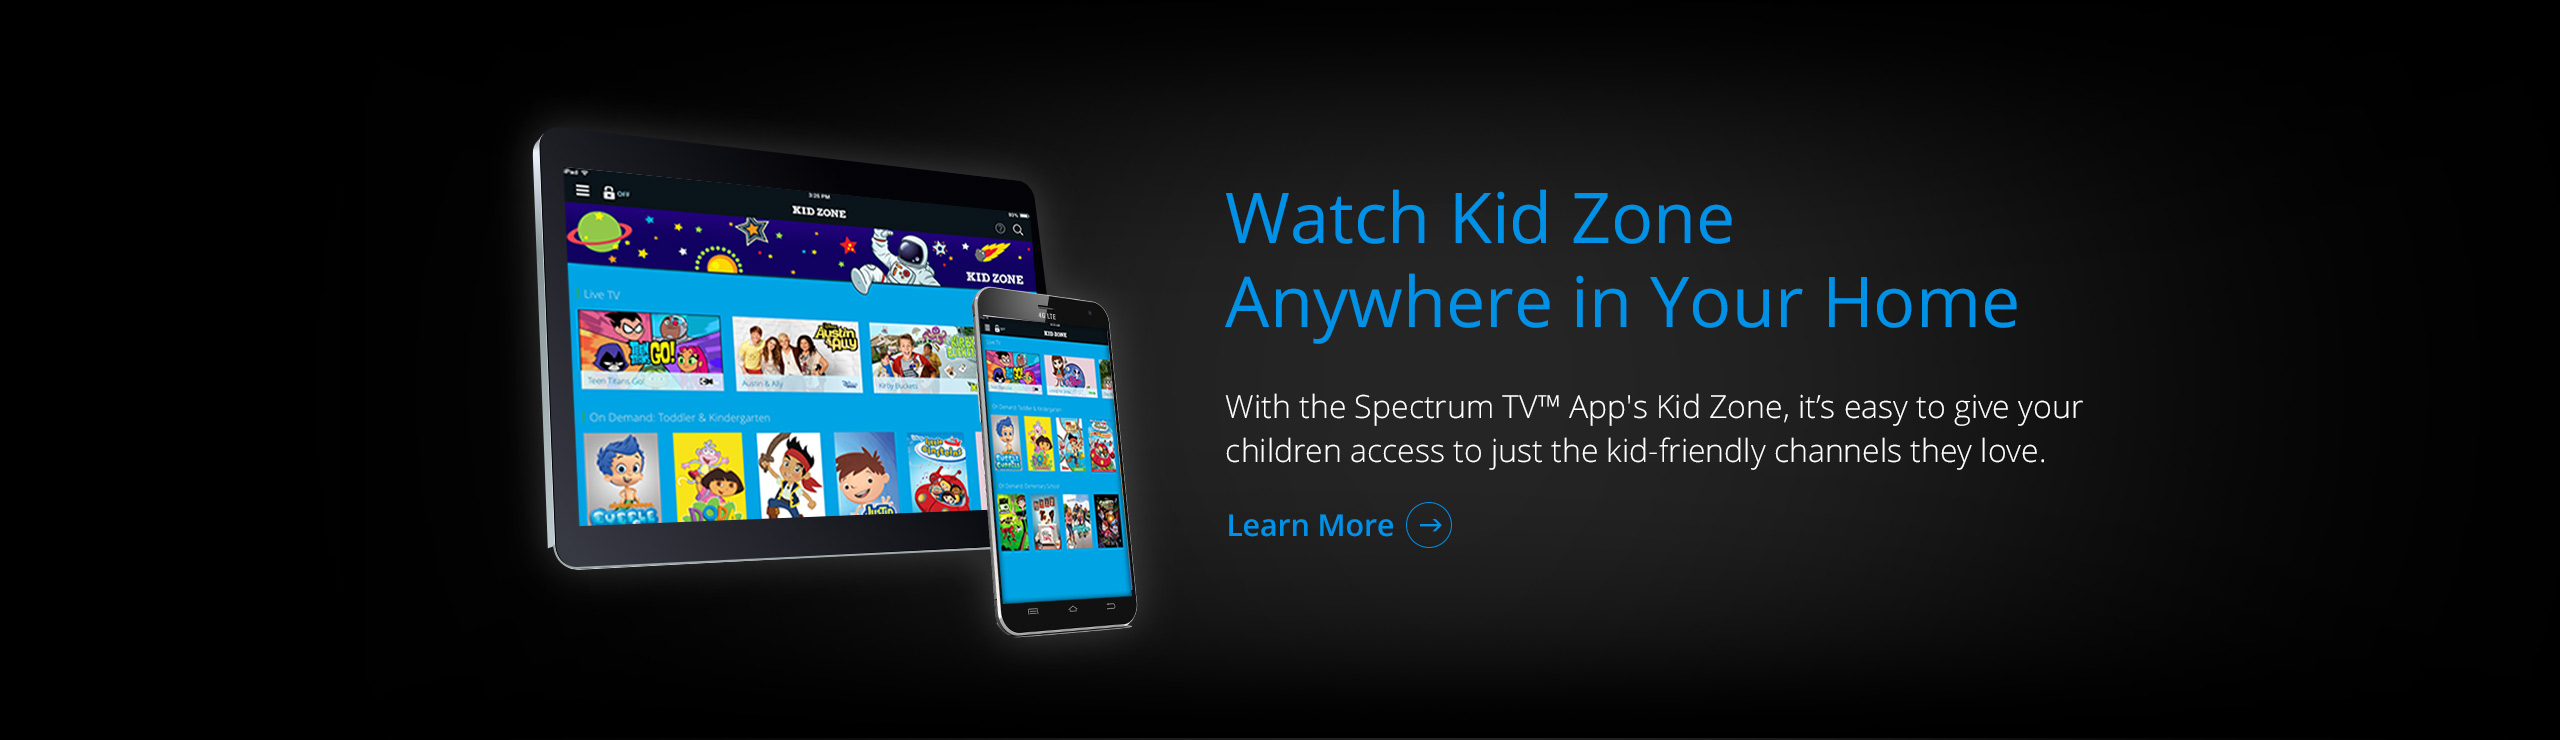 Spectrum TV App Kid Zone